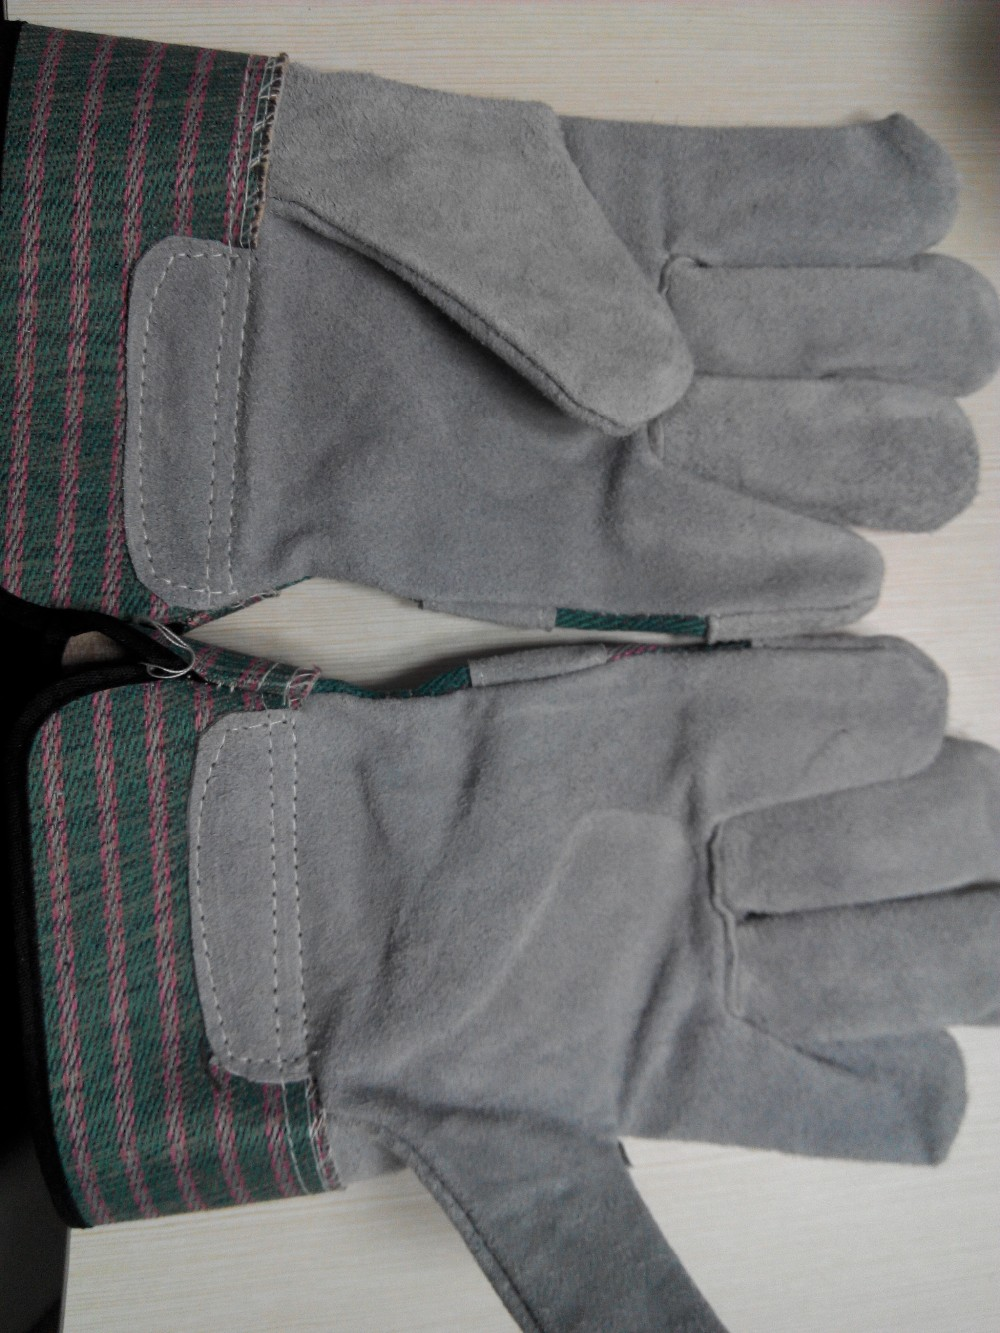 Cow split rigger gloves/ leather work gloves